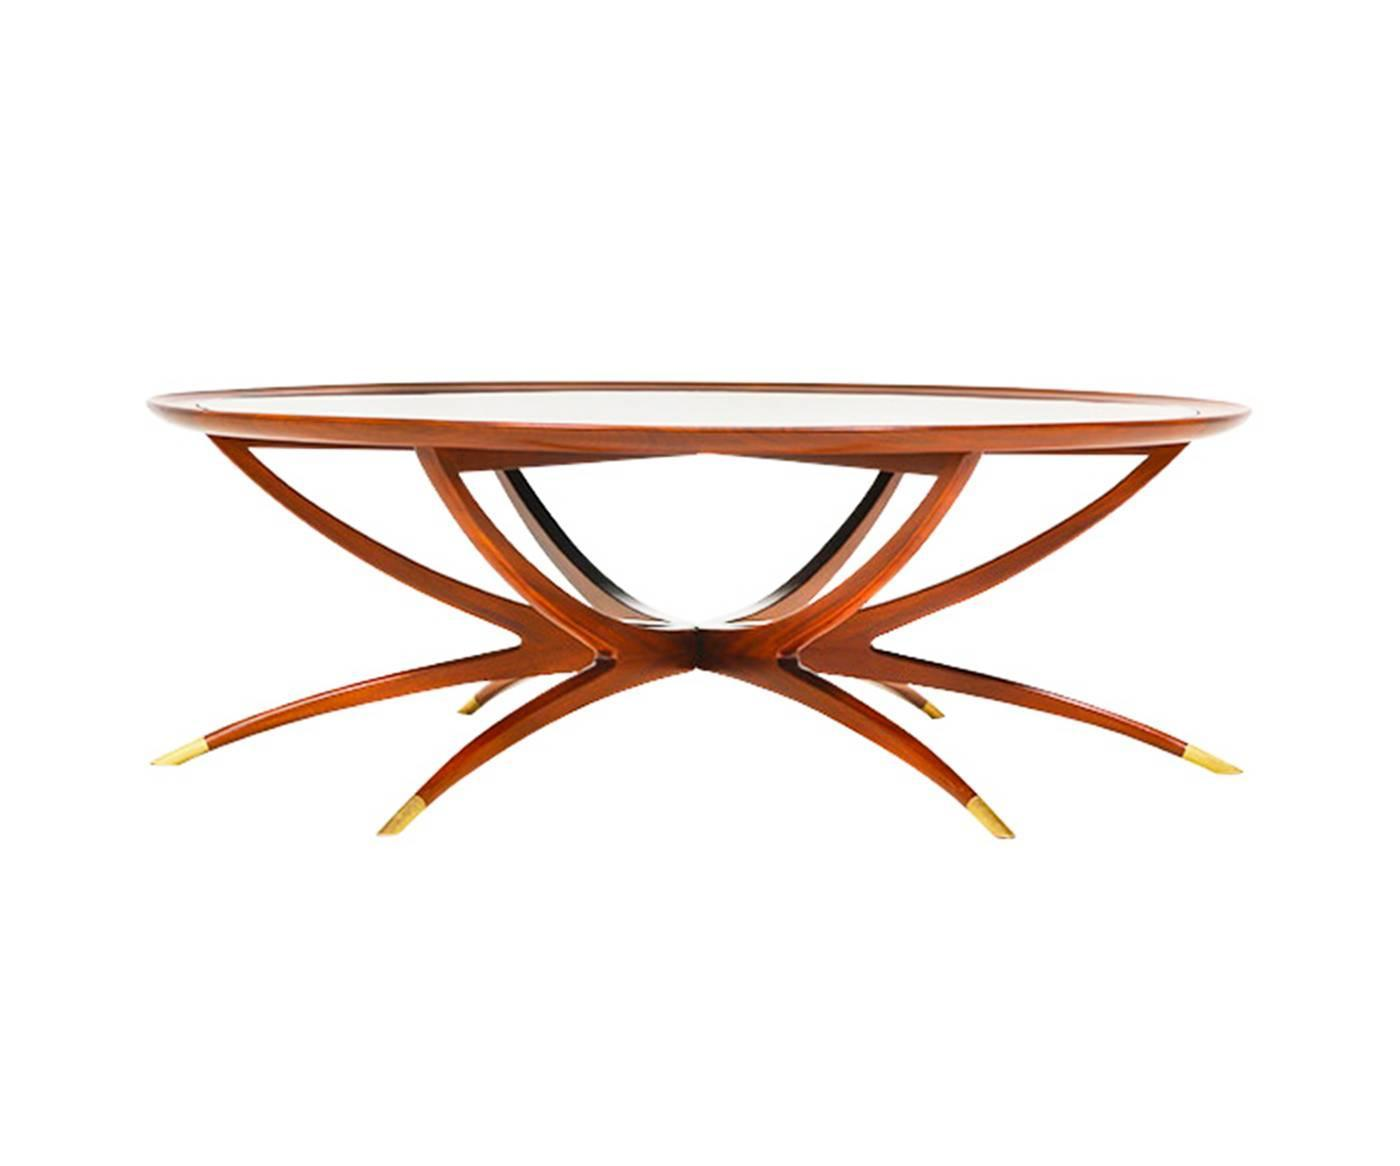 Danish Teak Folding Spider Leg Coffee Table By Selig For Sale At 1stdibs